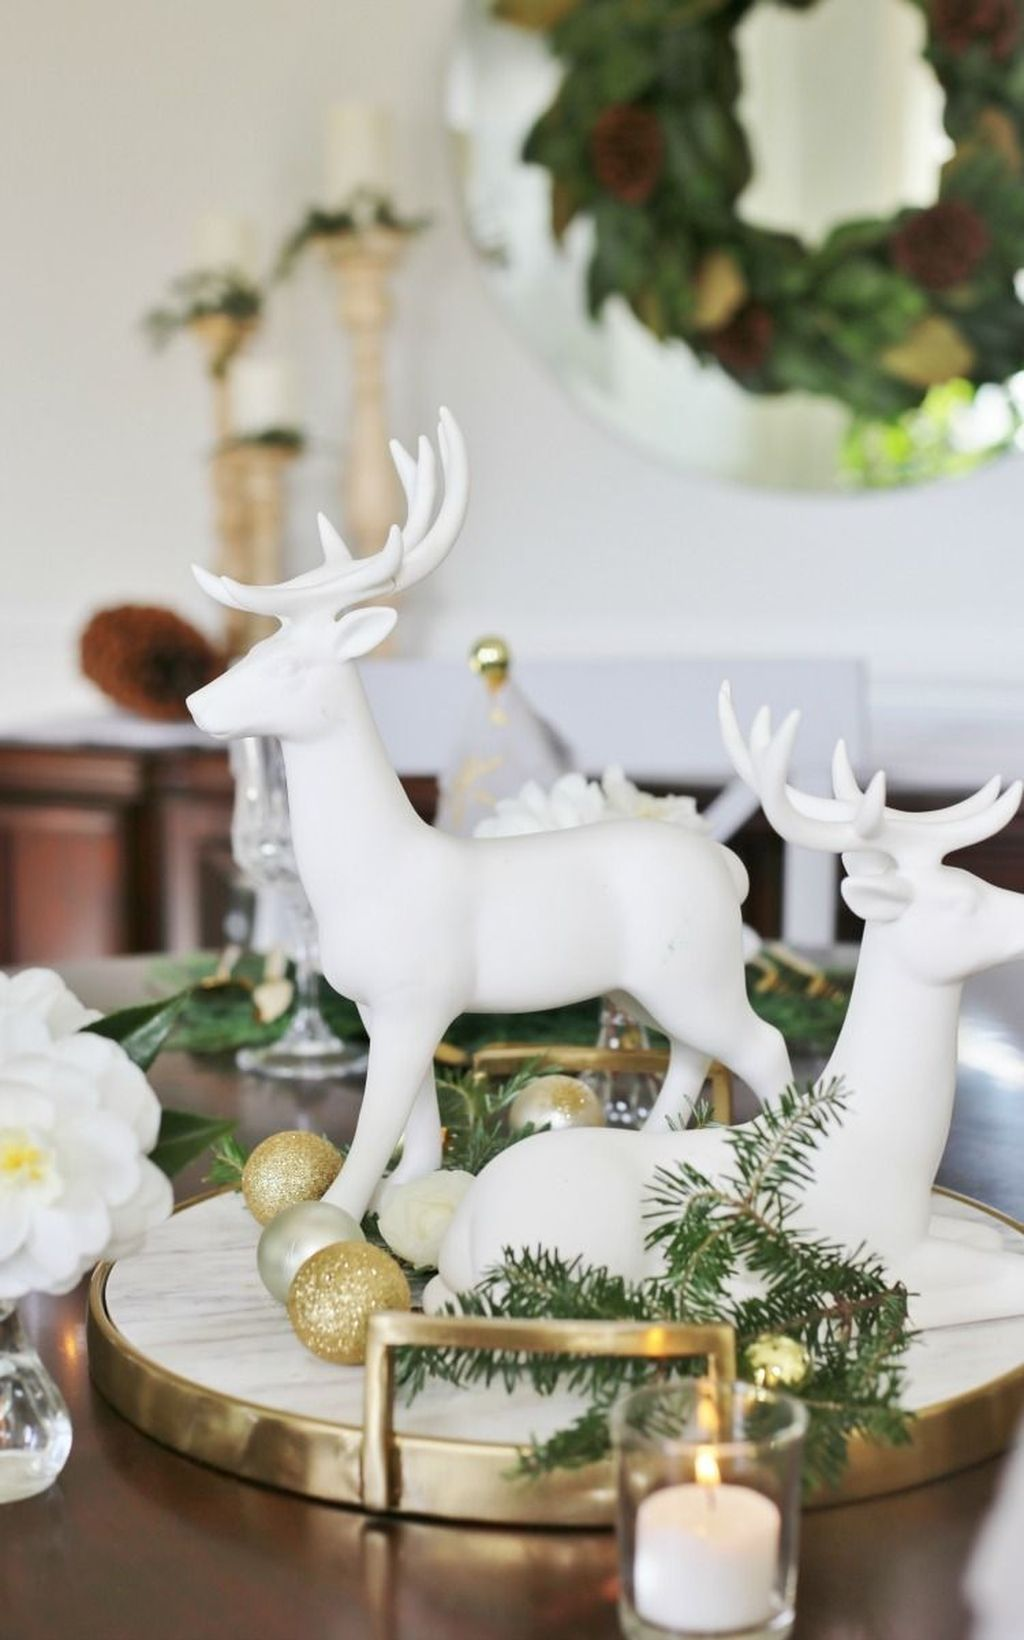 30 Stunning Christmas Dining Table Decoration Ideas Christmas Deer Decorations Christmas Dining Table Christmas Table Decorations